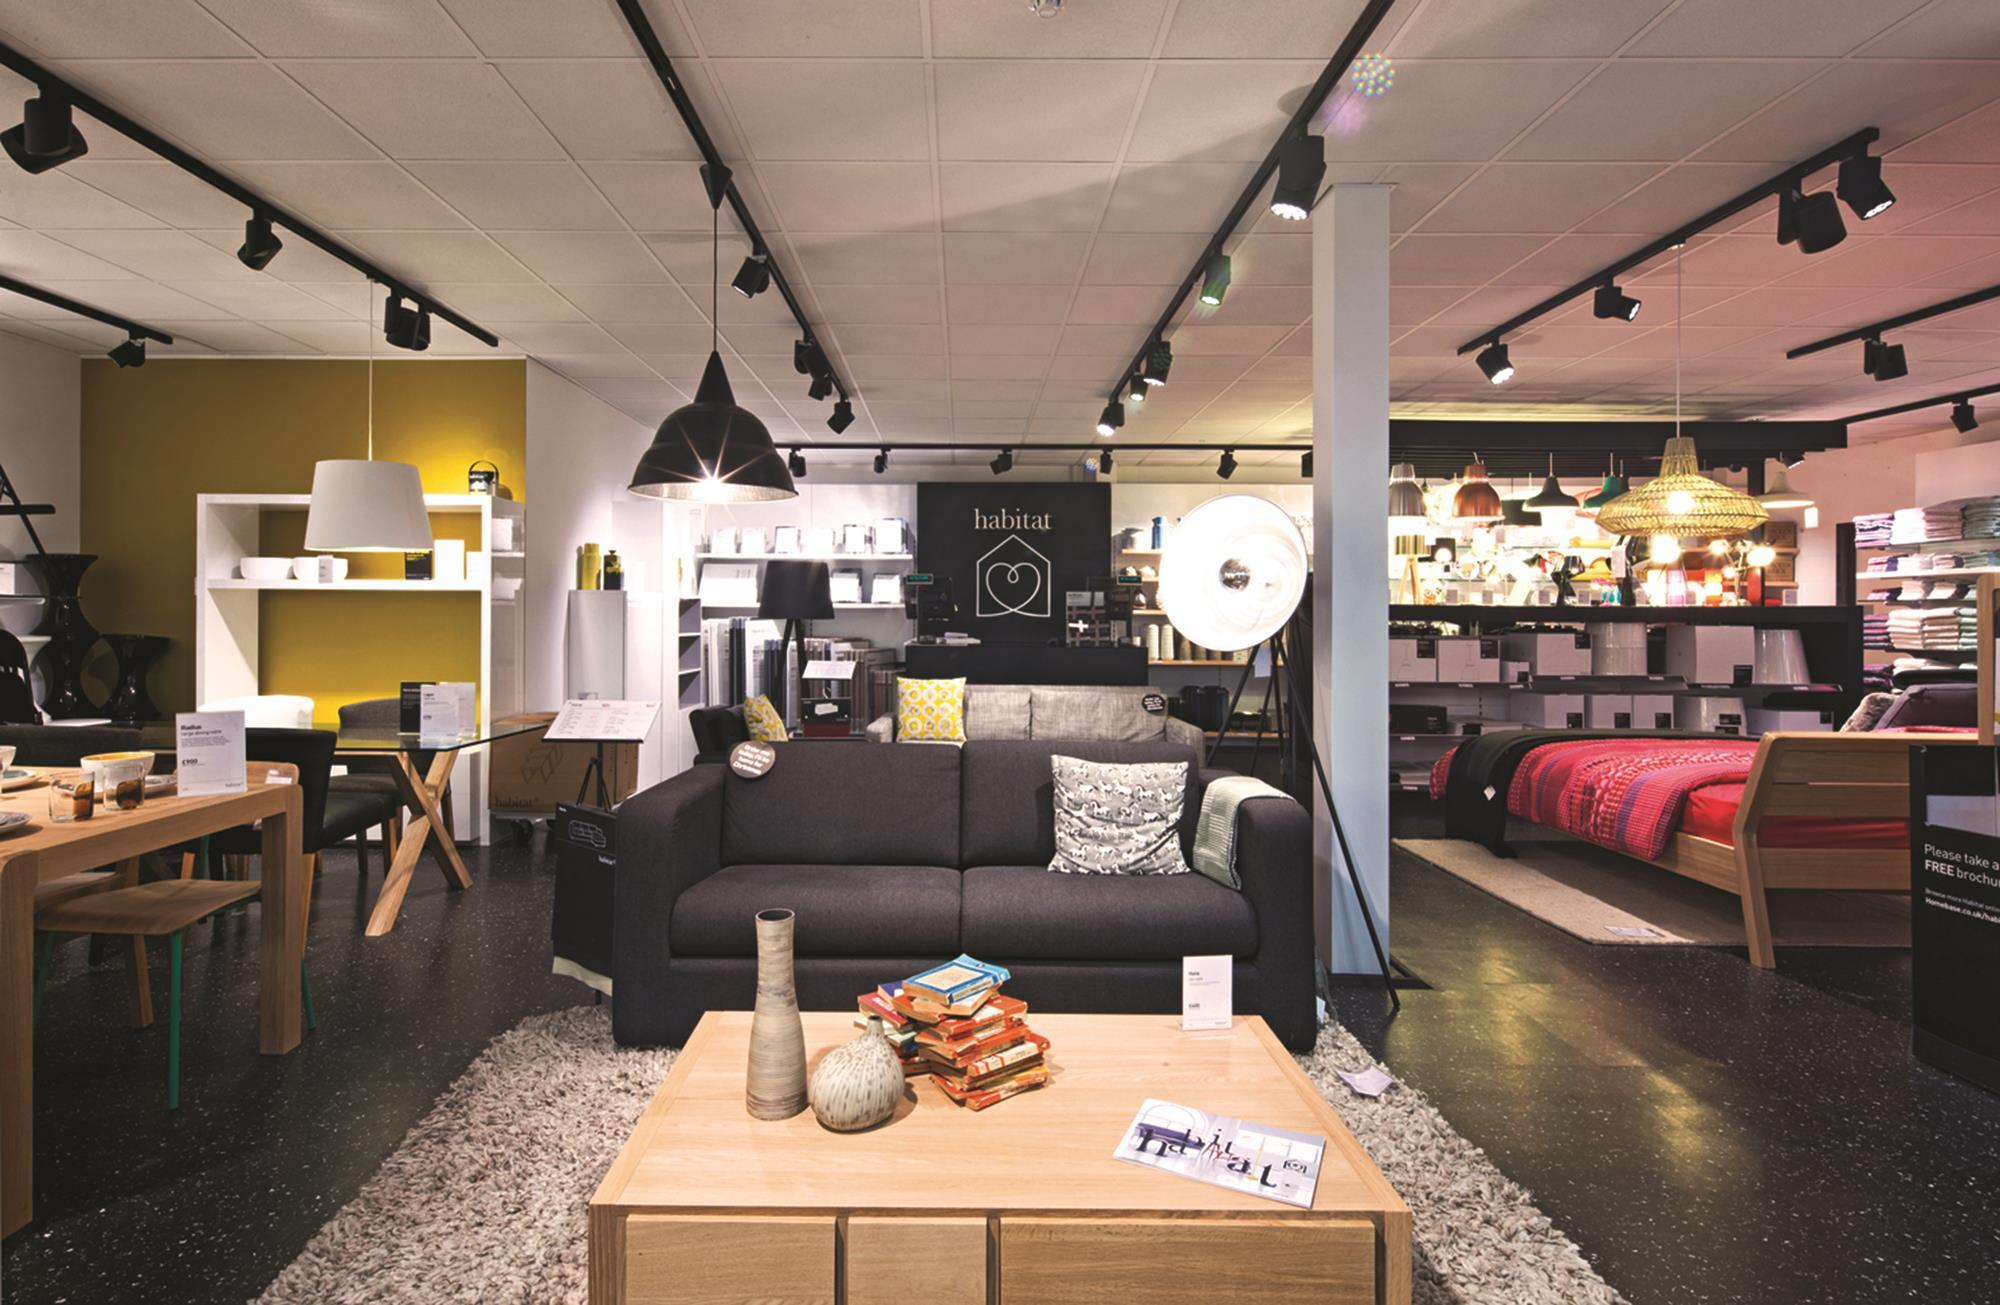 Analysis Habitat Makes Itself At Home In A New Retail Landscape